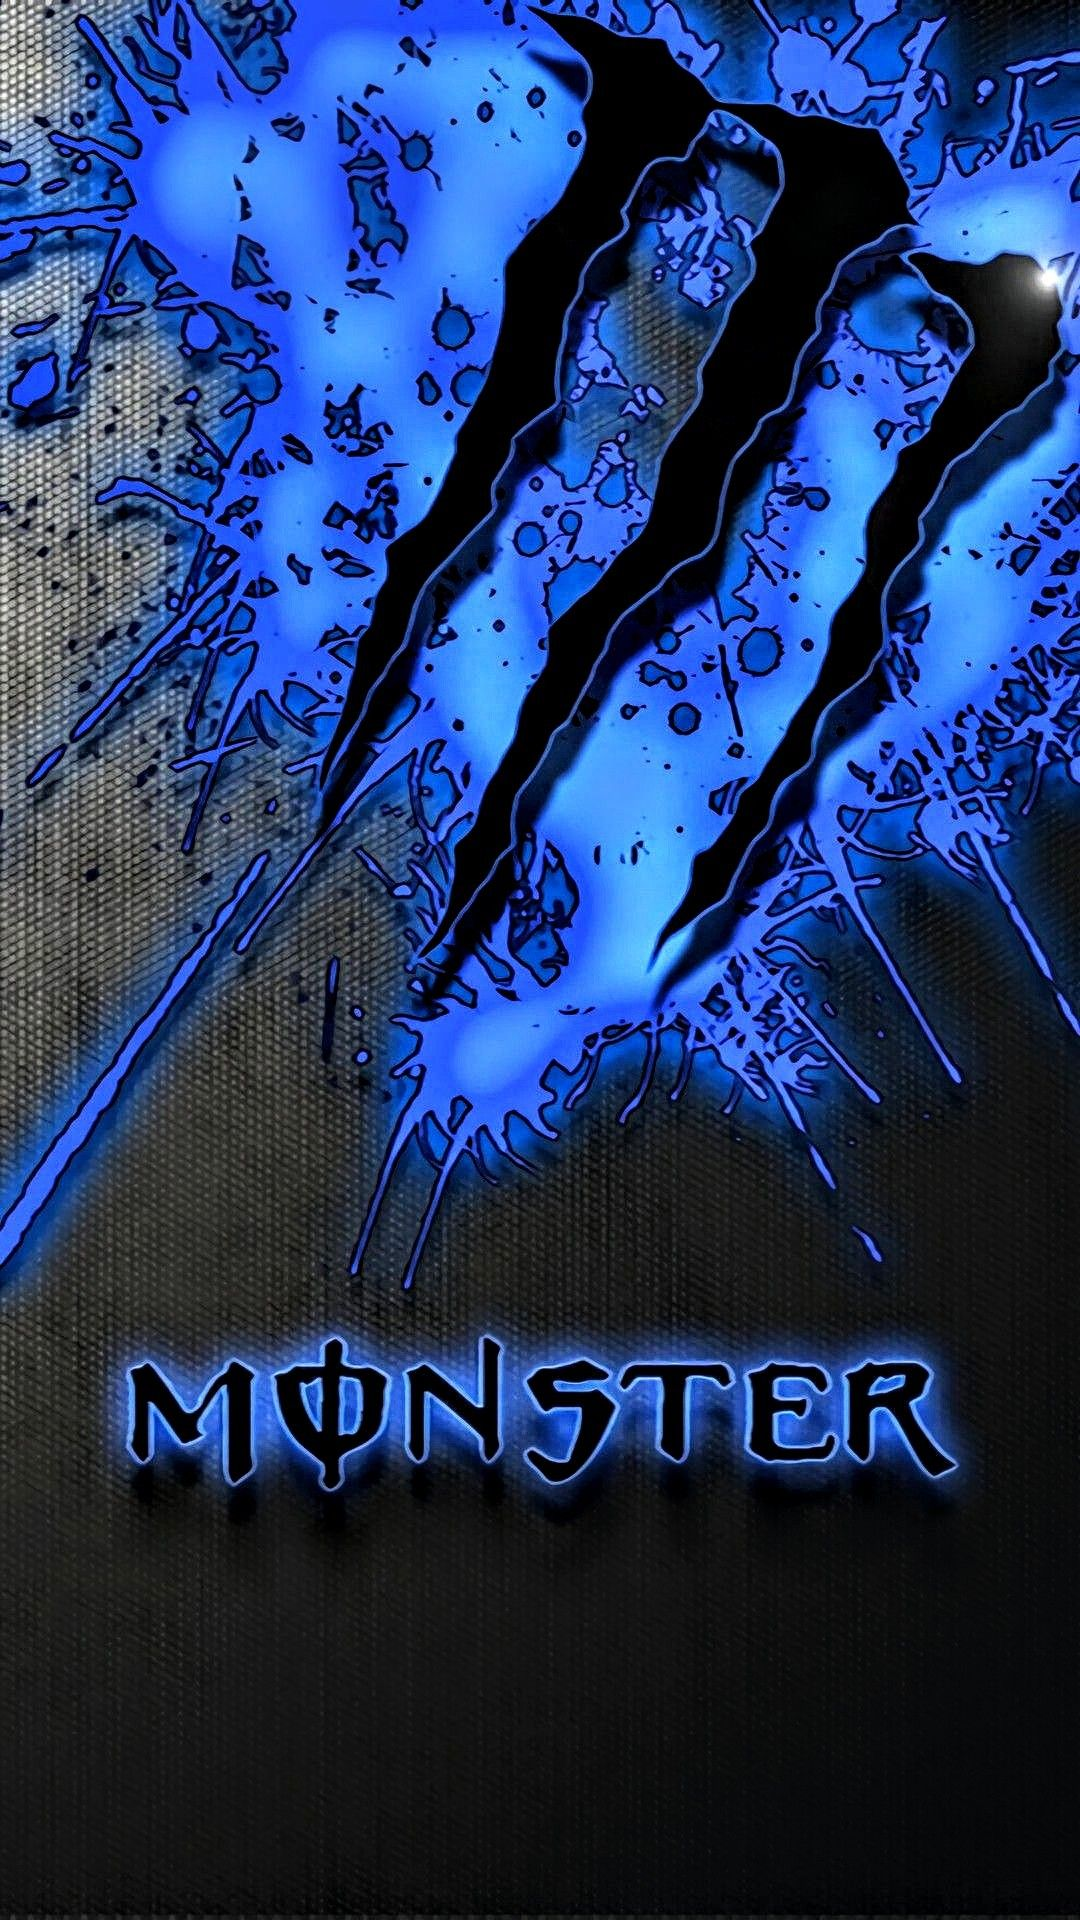 Pin By Sylviadolan On Android Wallpaper In 2020 Monster Energy Energy Logo Monster Energy Drink